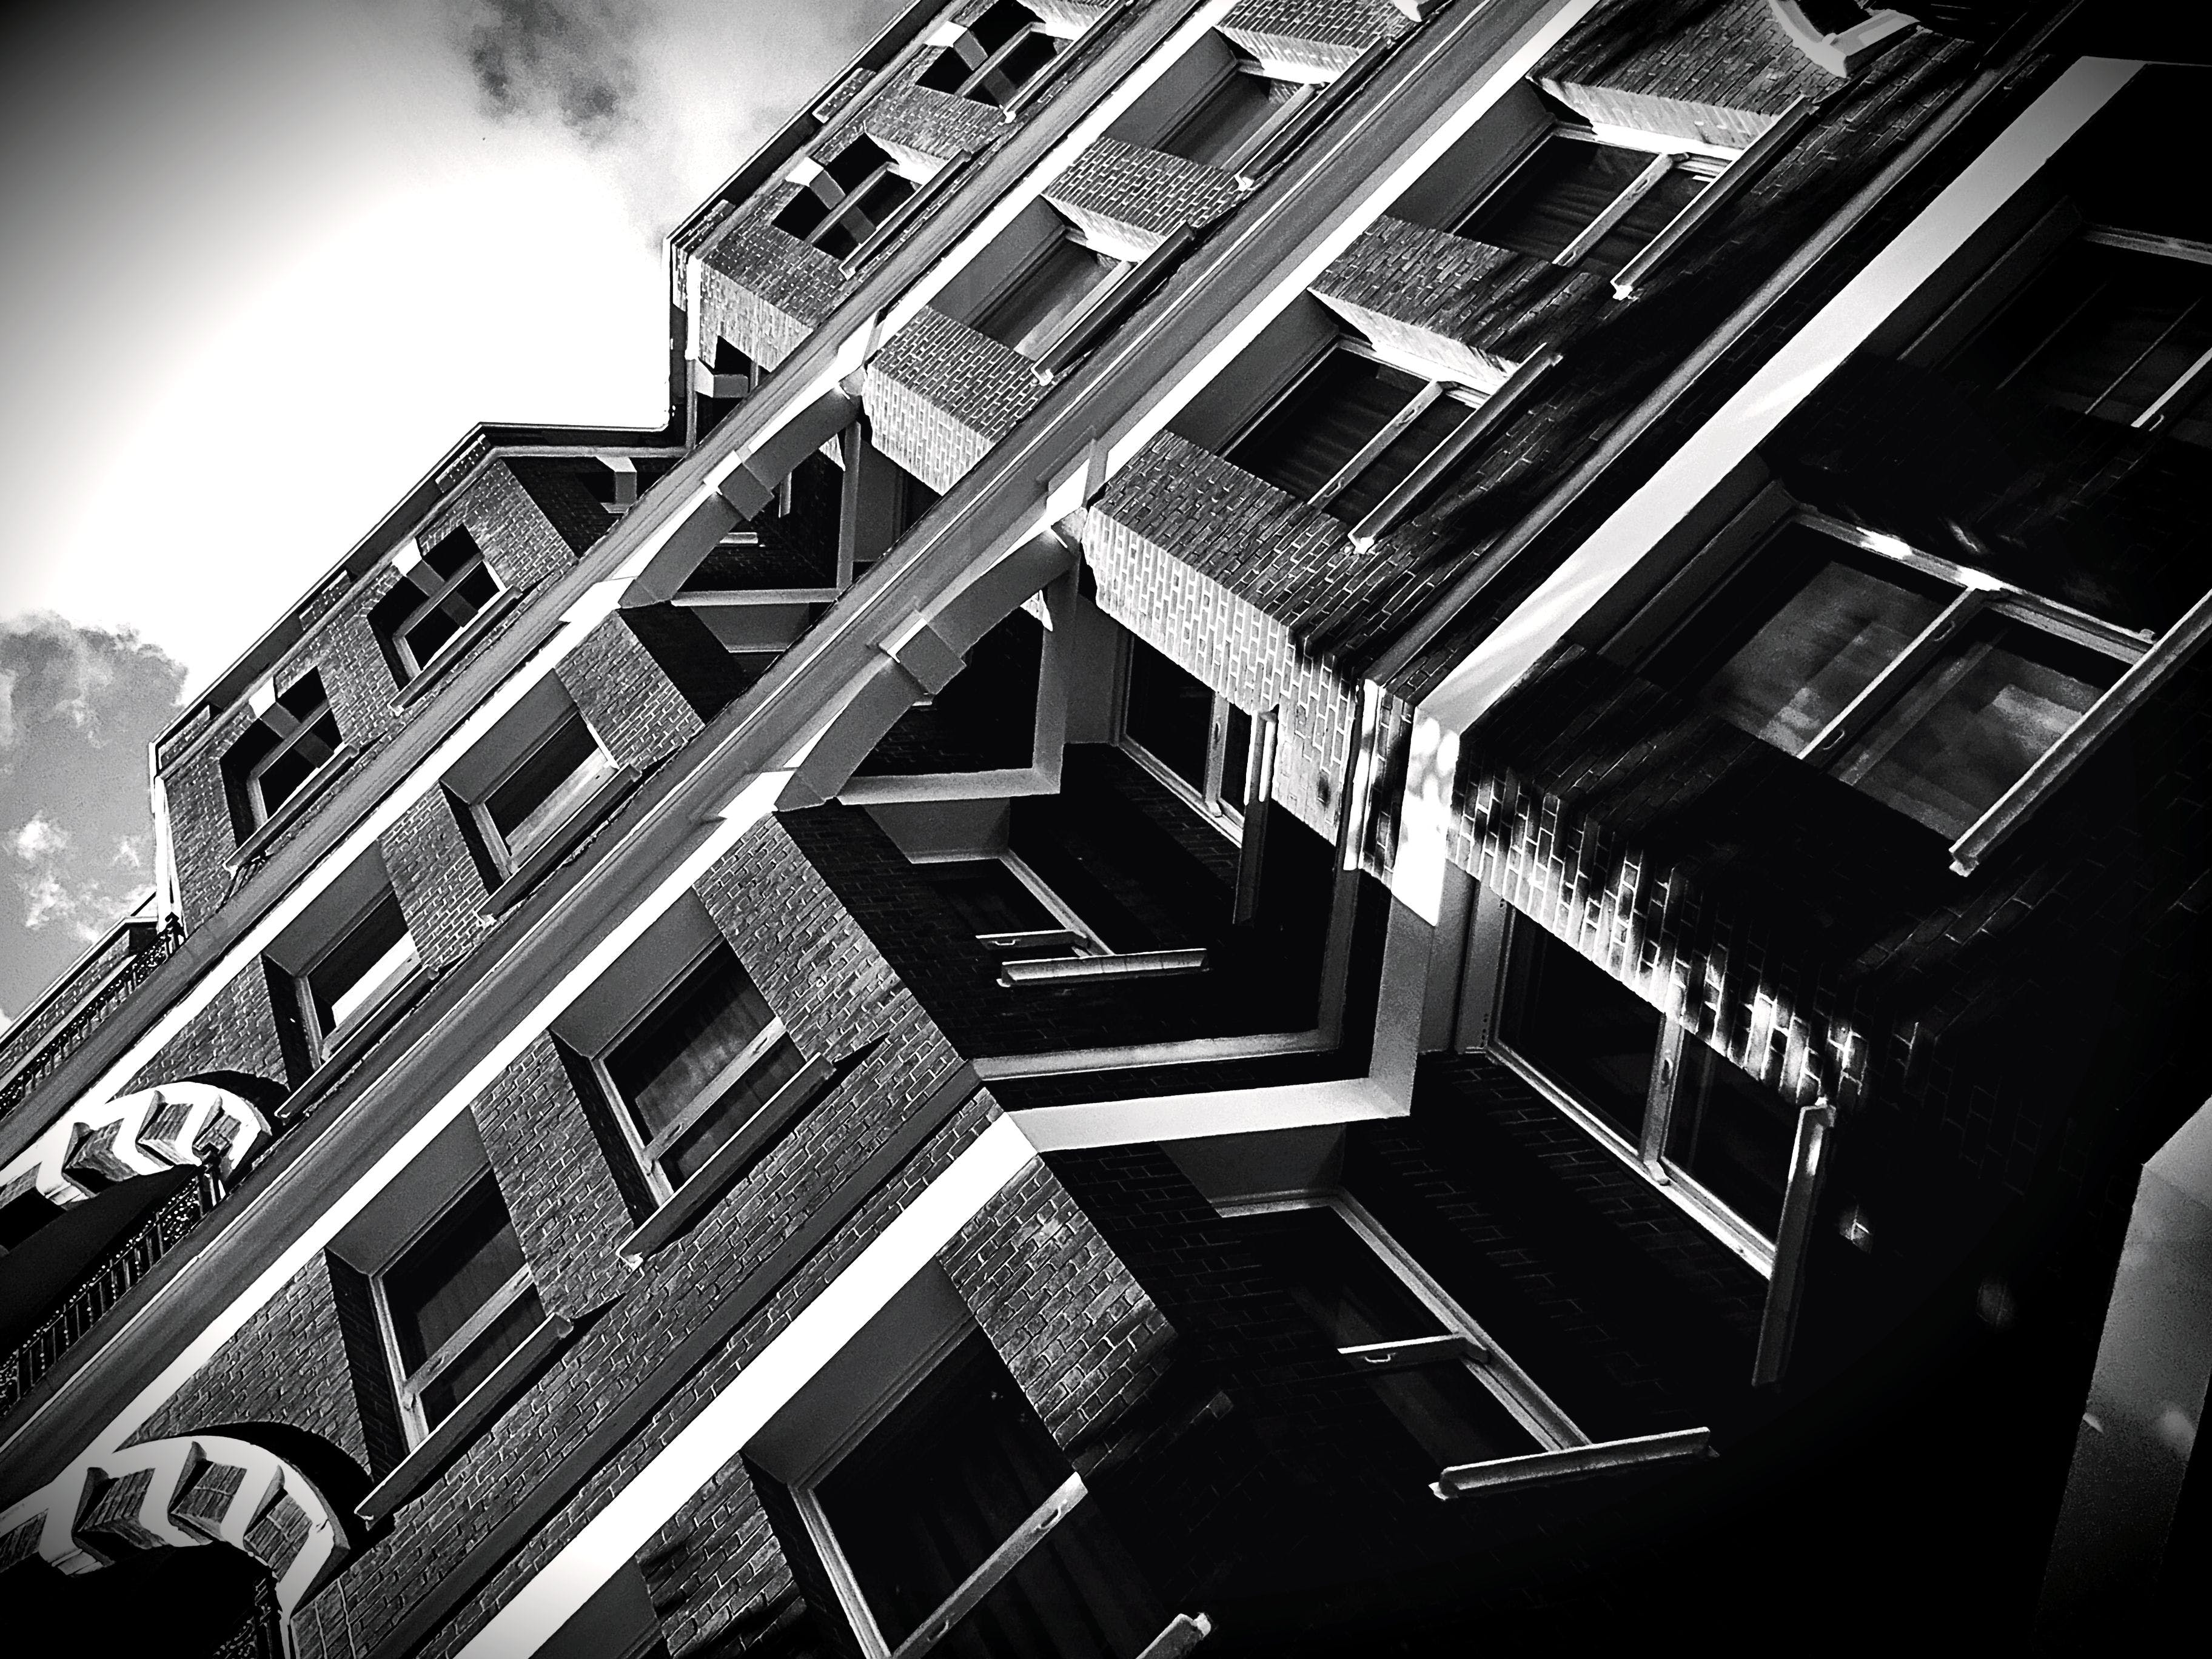 Grayscale and Low Angle Photography of High-rise Builinding